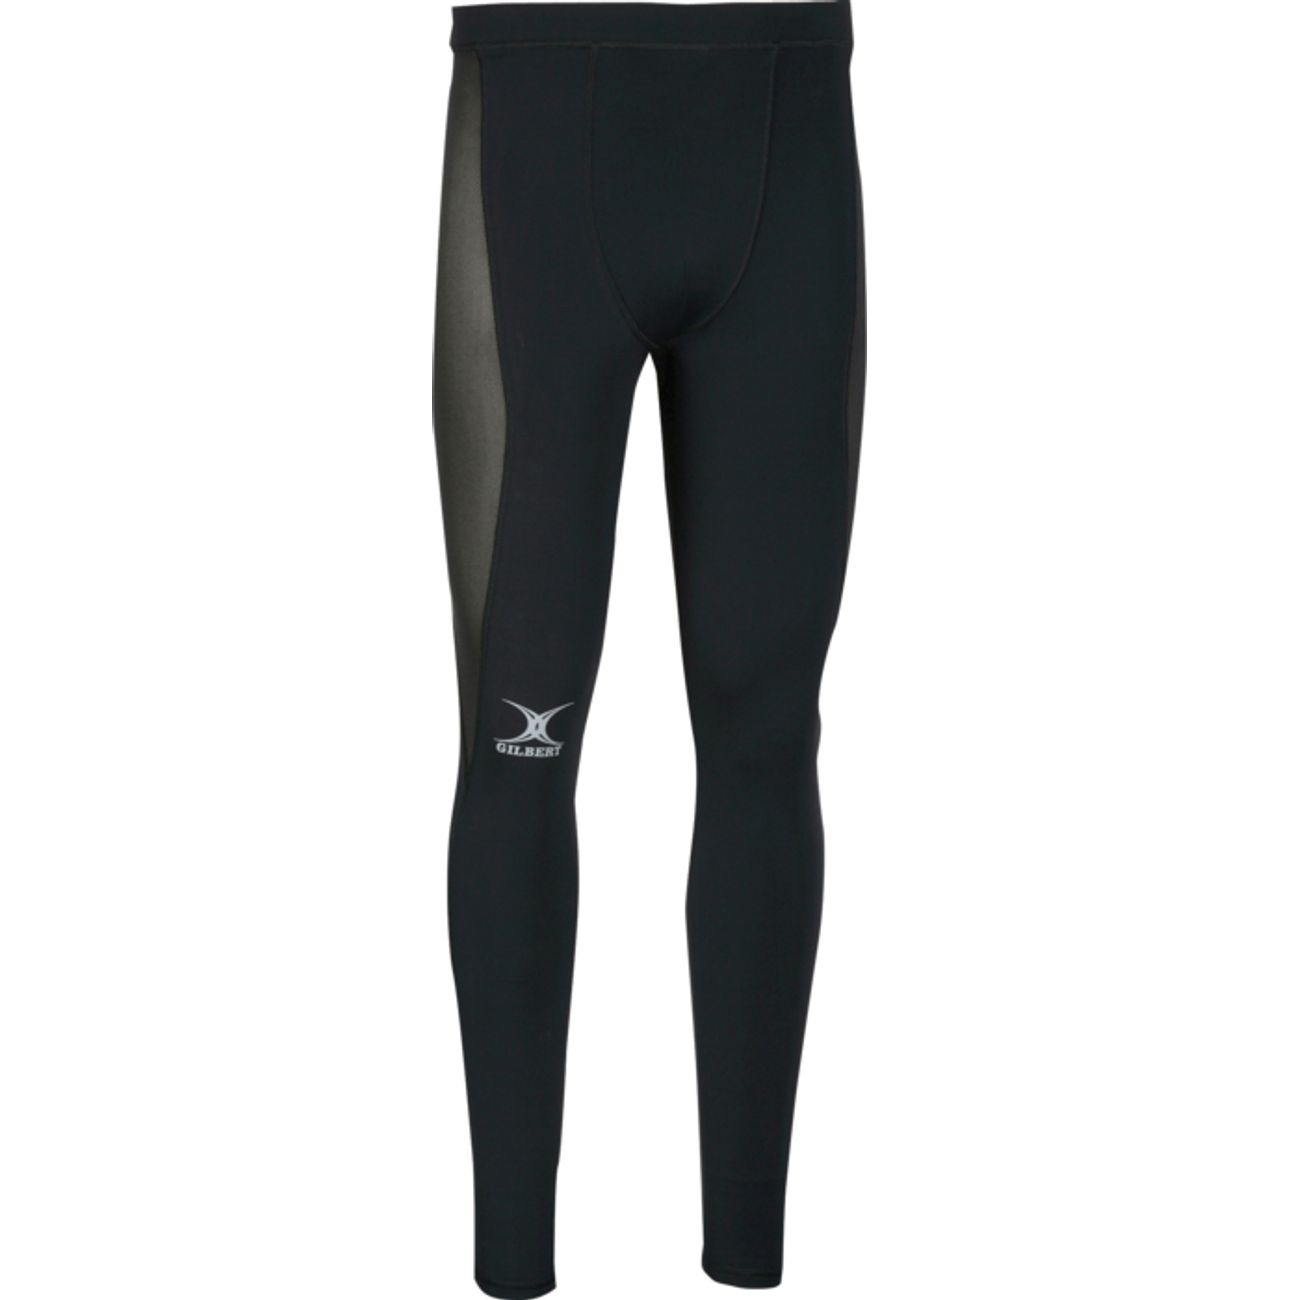 COLLANT Rugby adulte GILBERT ATOMIC BASE LAYER COLLANT 15